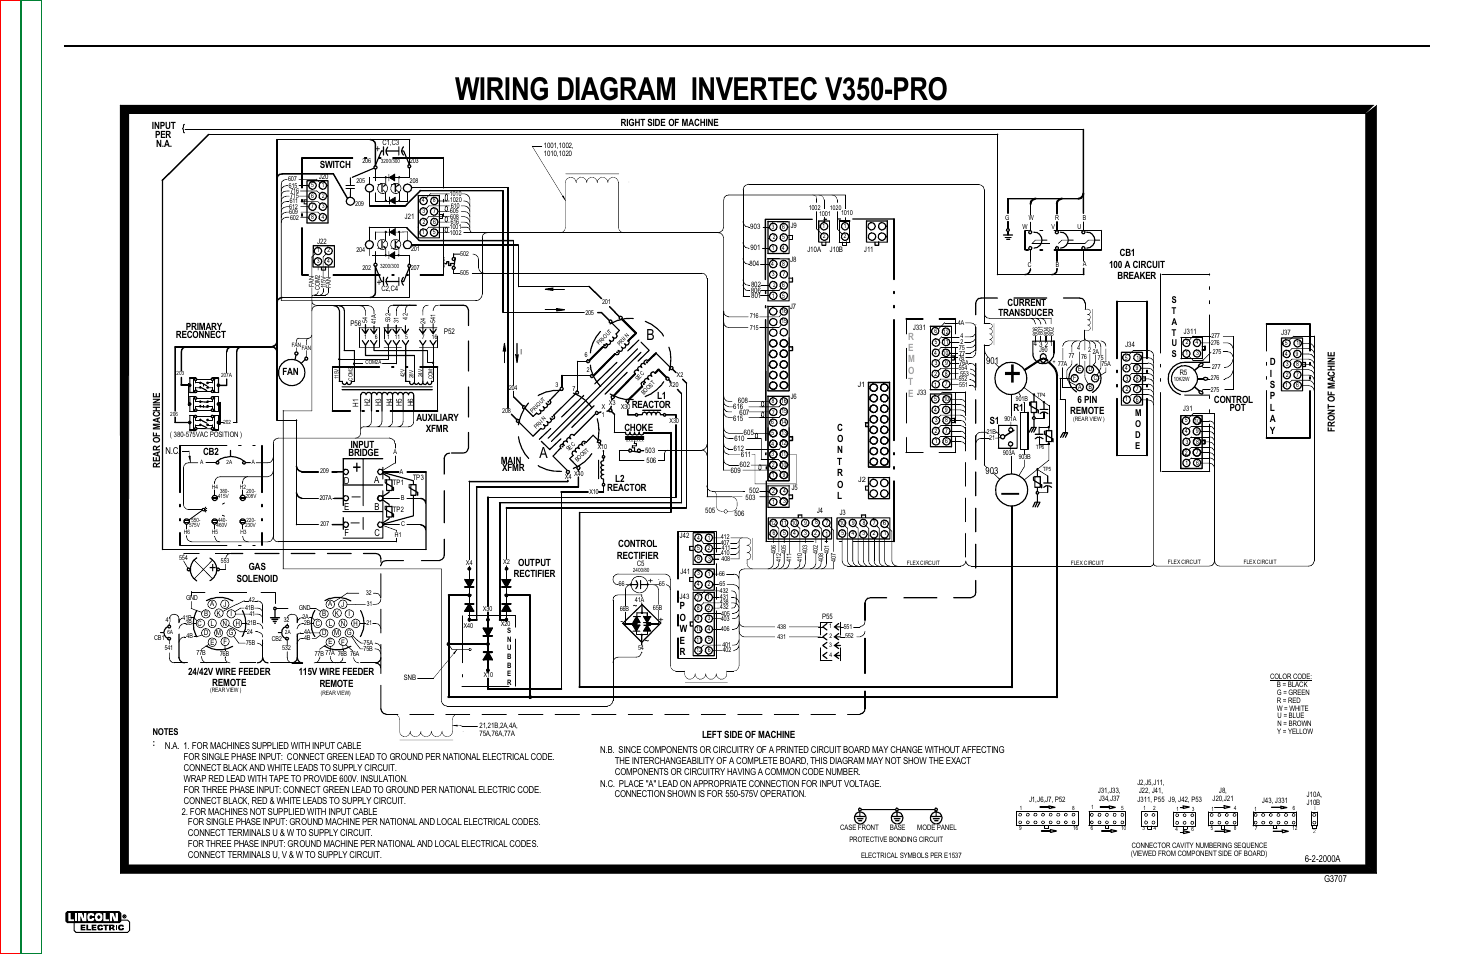 hight resolution of wiring diagram invertec v350 pro electrical diagrams wiring diagram invertec v350 pro lincoln electric invertec v350 pro svm152 a user manual page